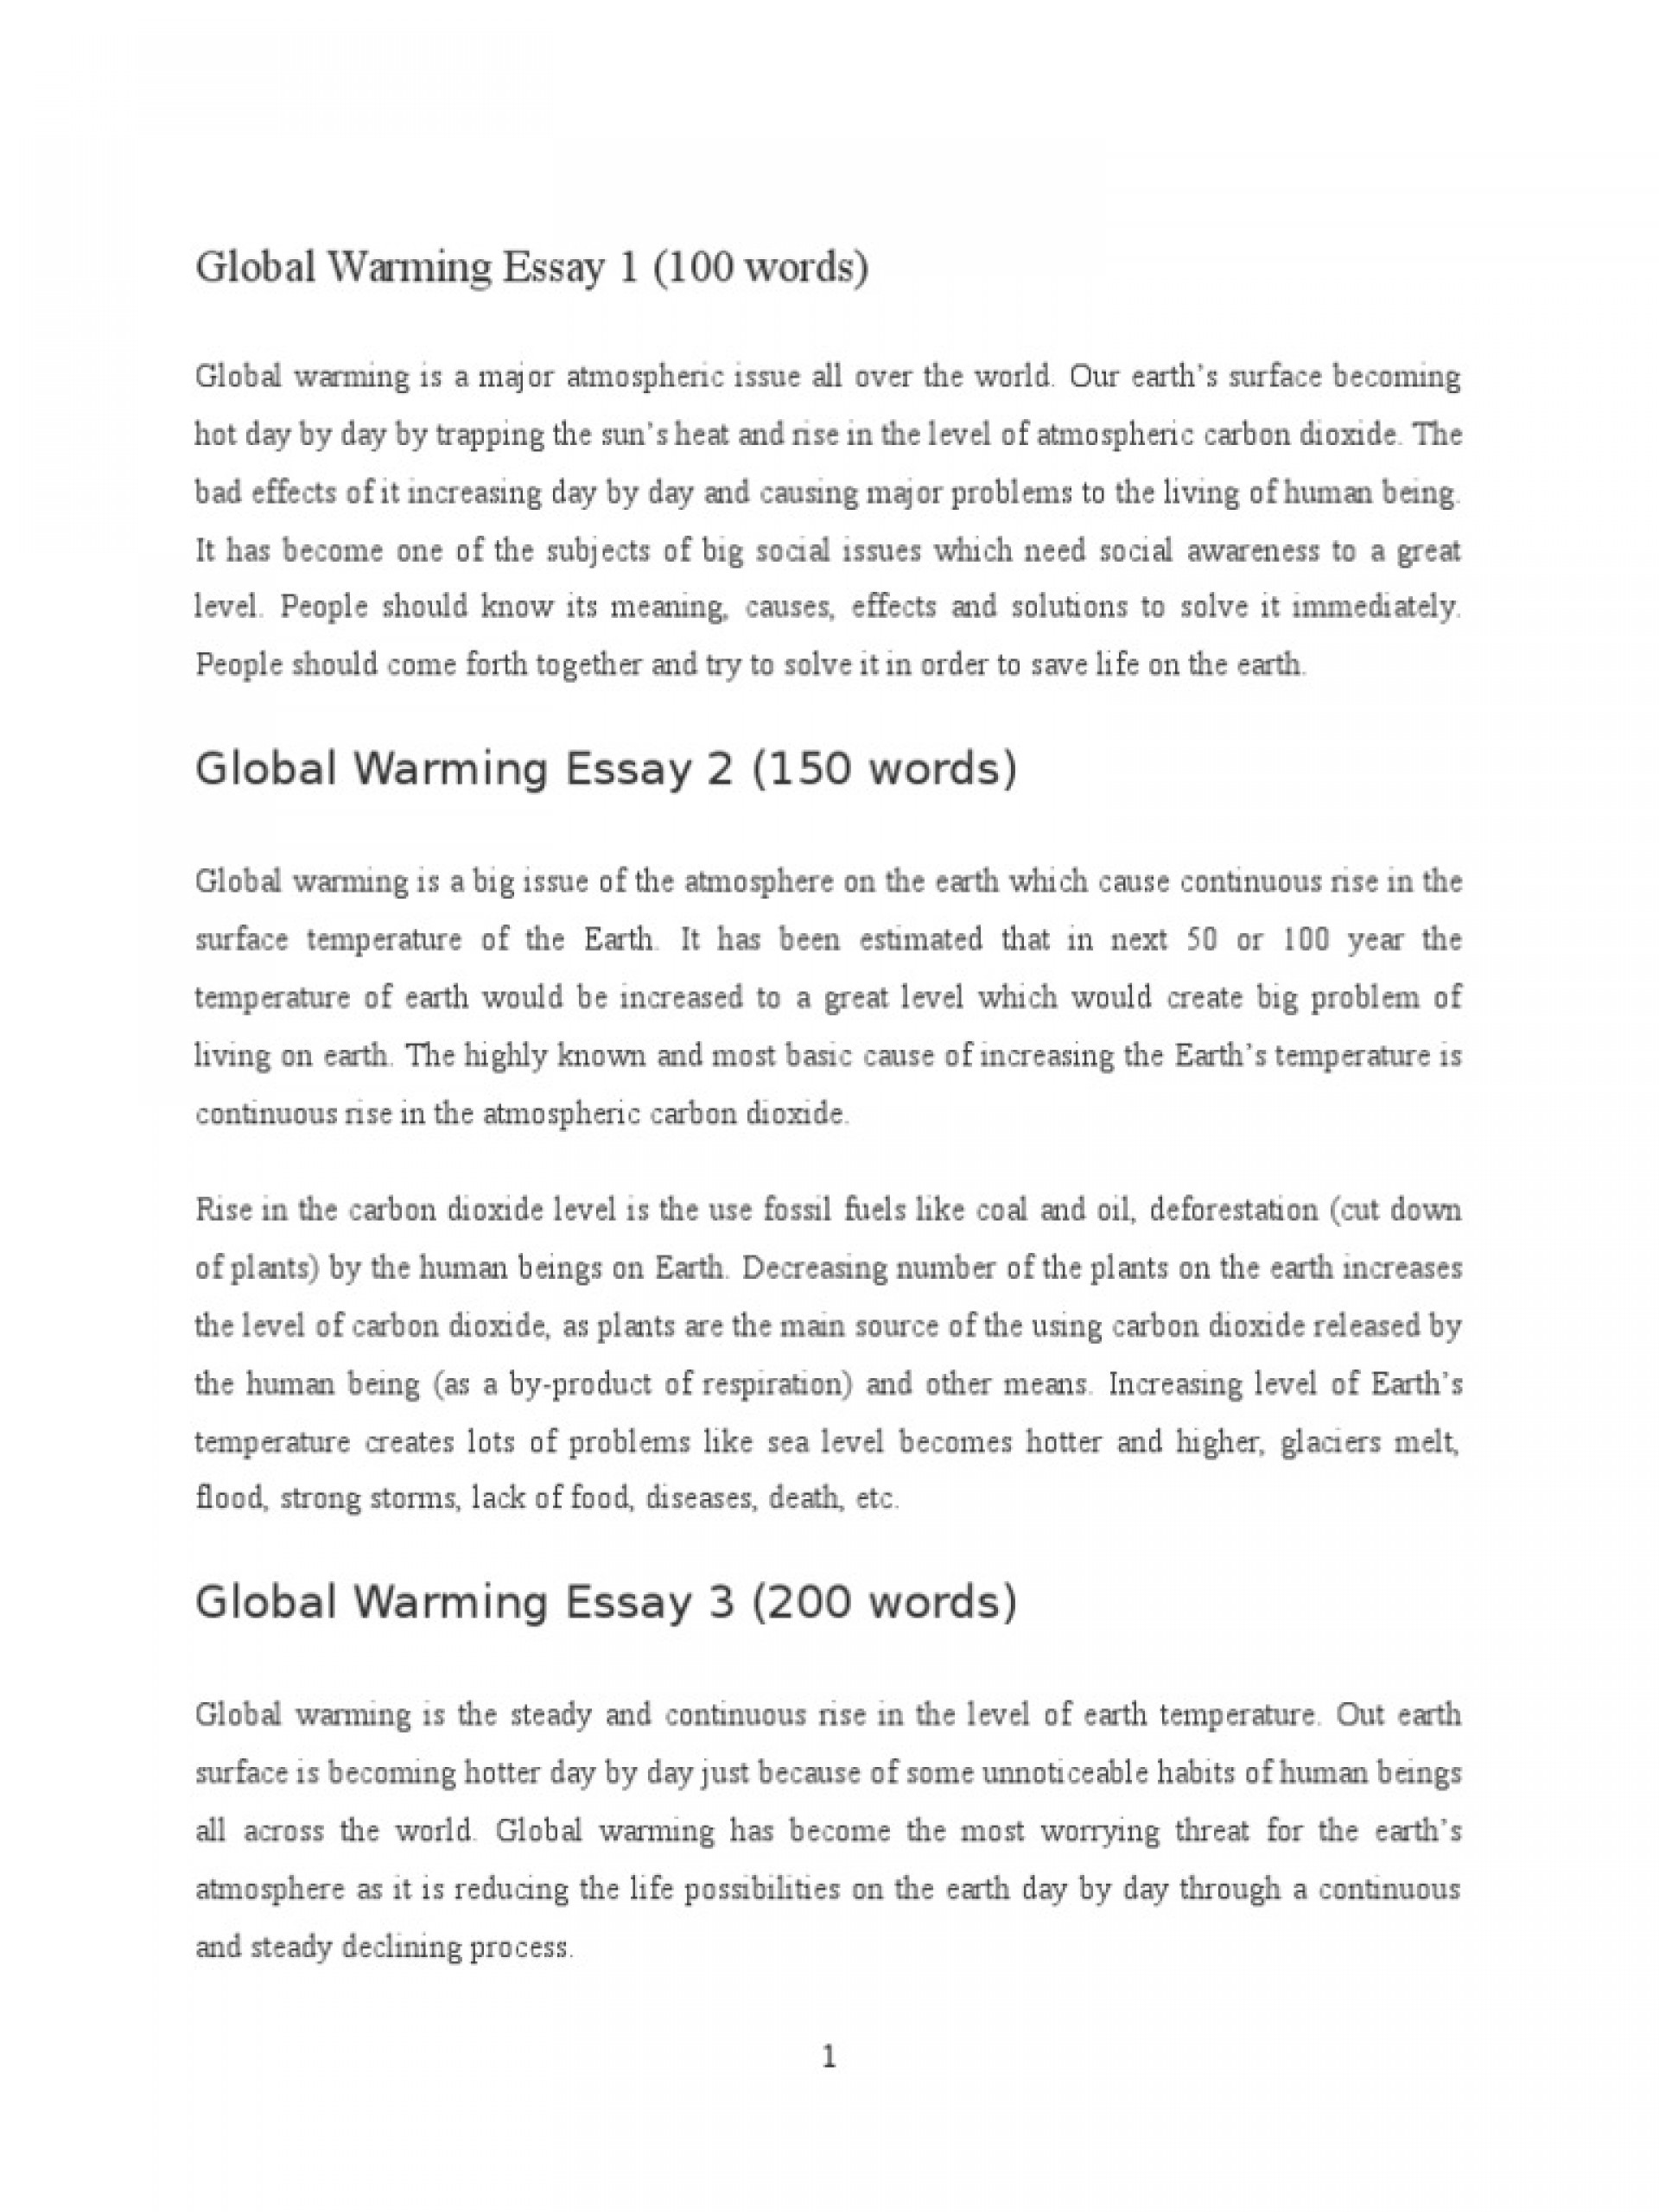 008 Global Warming Essay 1 5882e593b6d87f85288b46ba Unusual Hook Conclusion Outline 1920